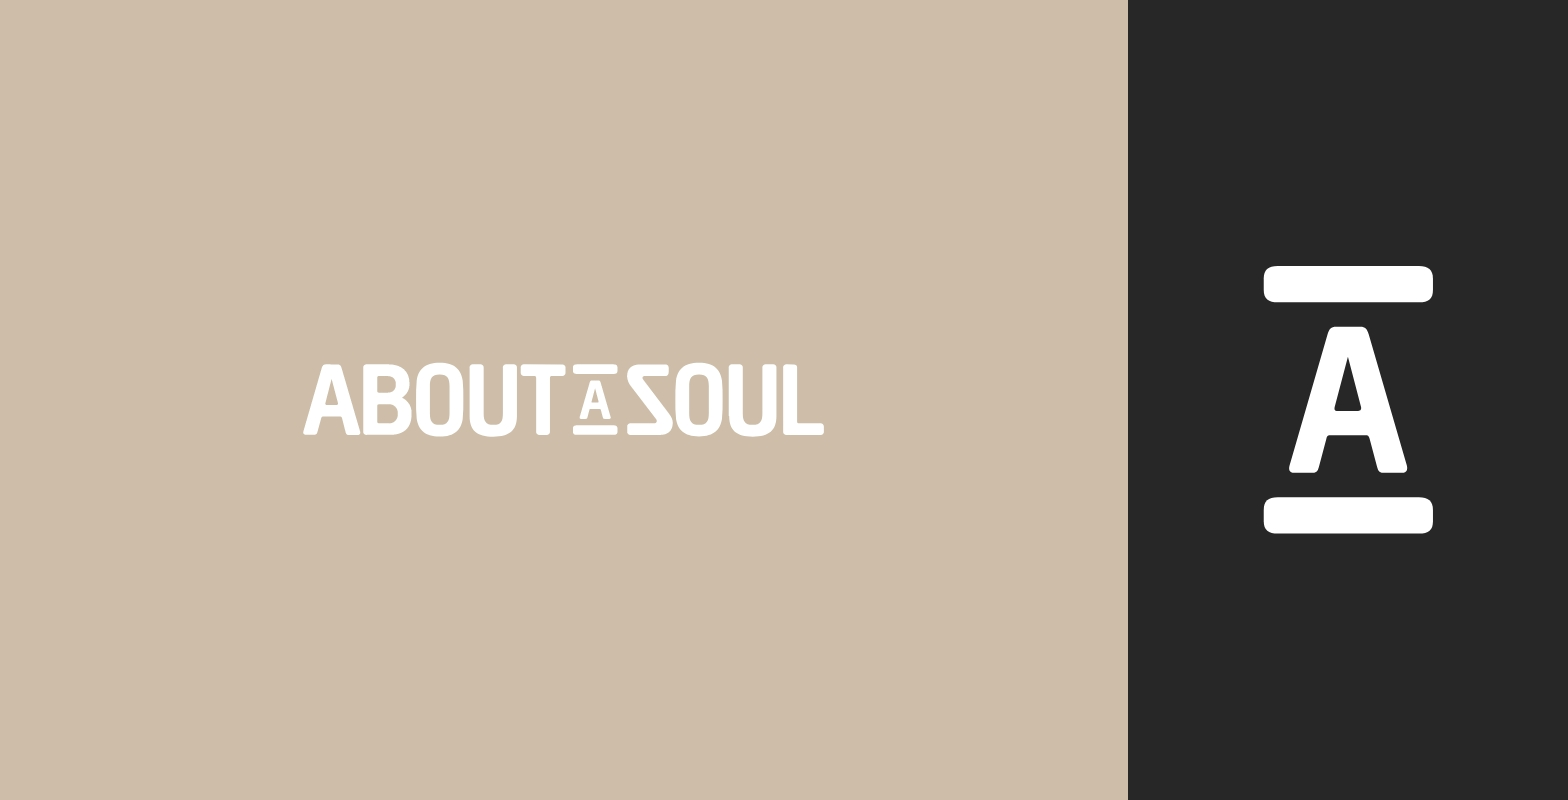 About a Soul - Identidade Visual e Branding(1)